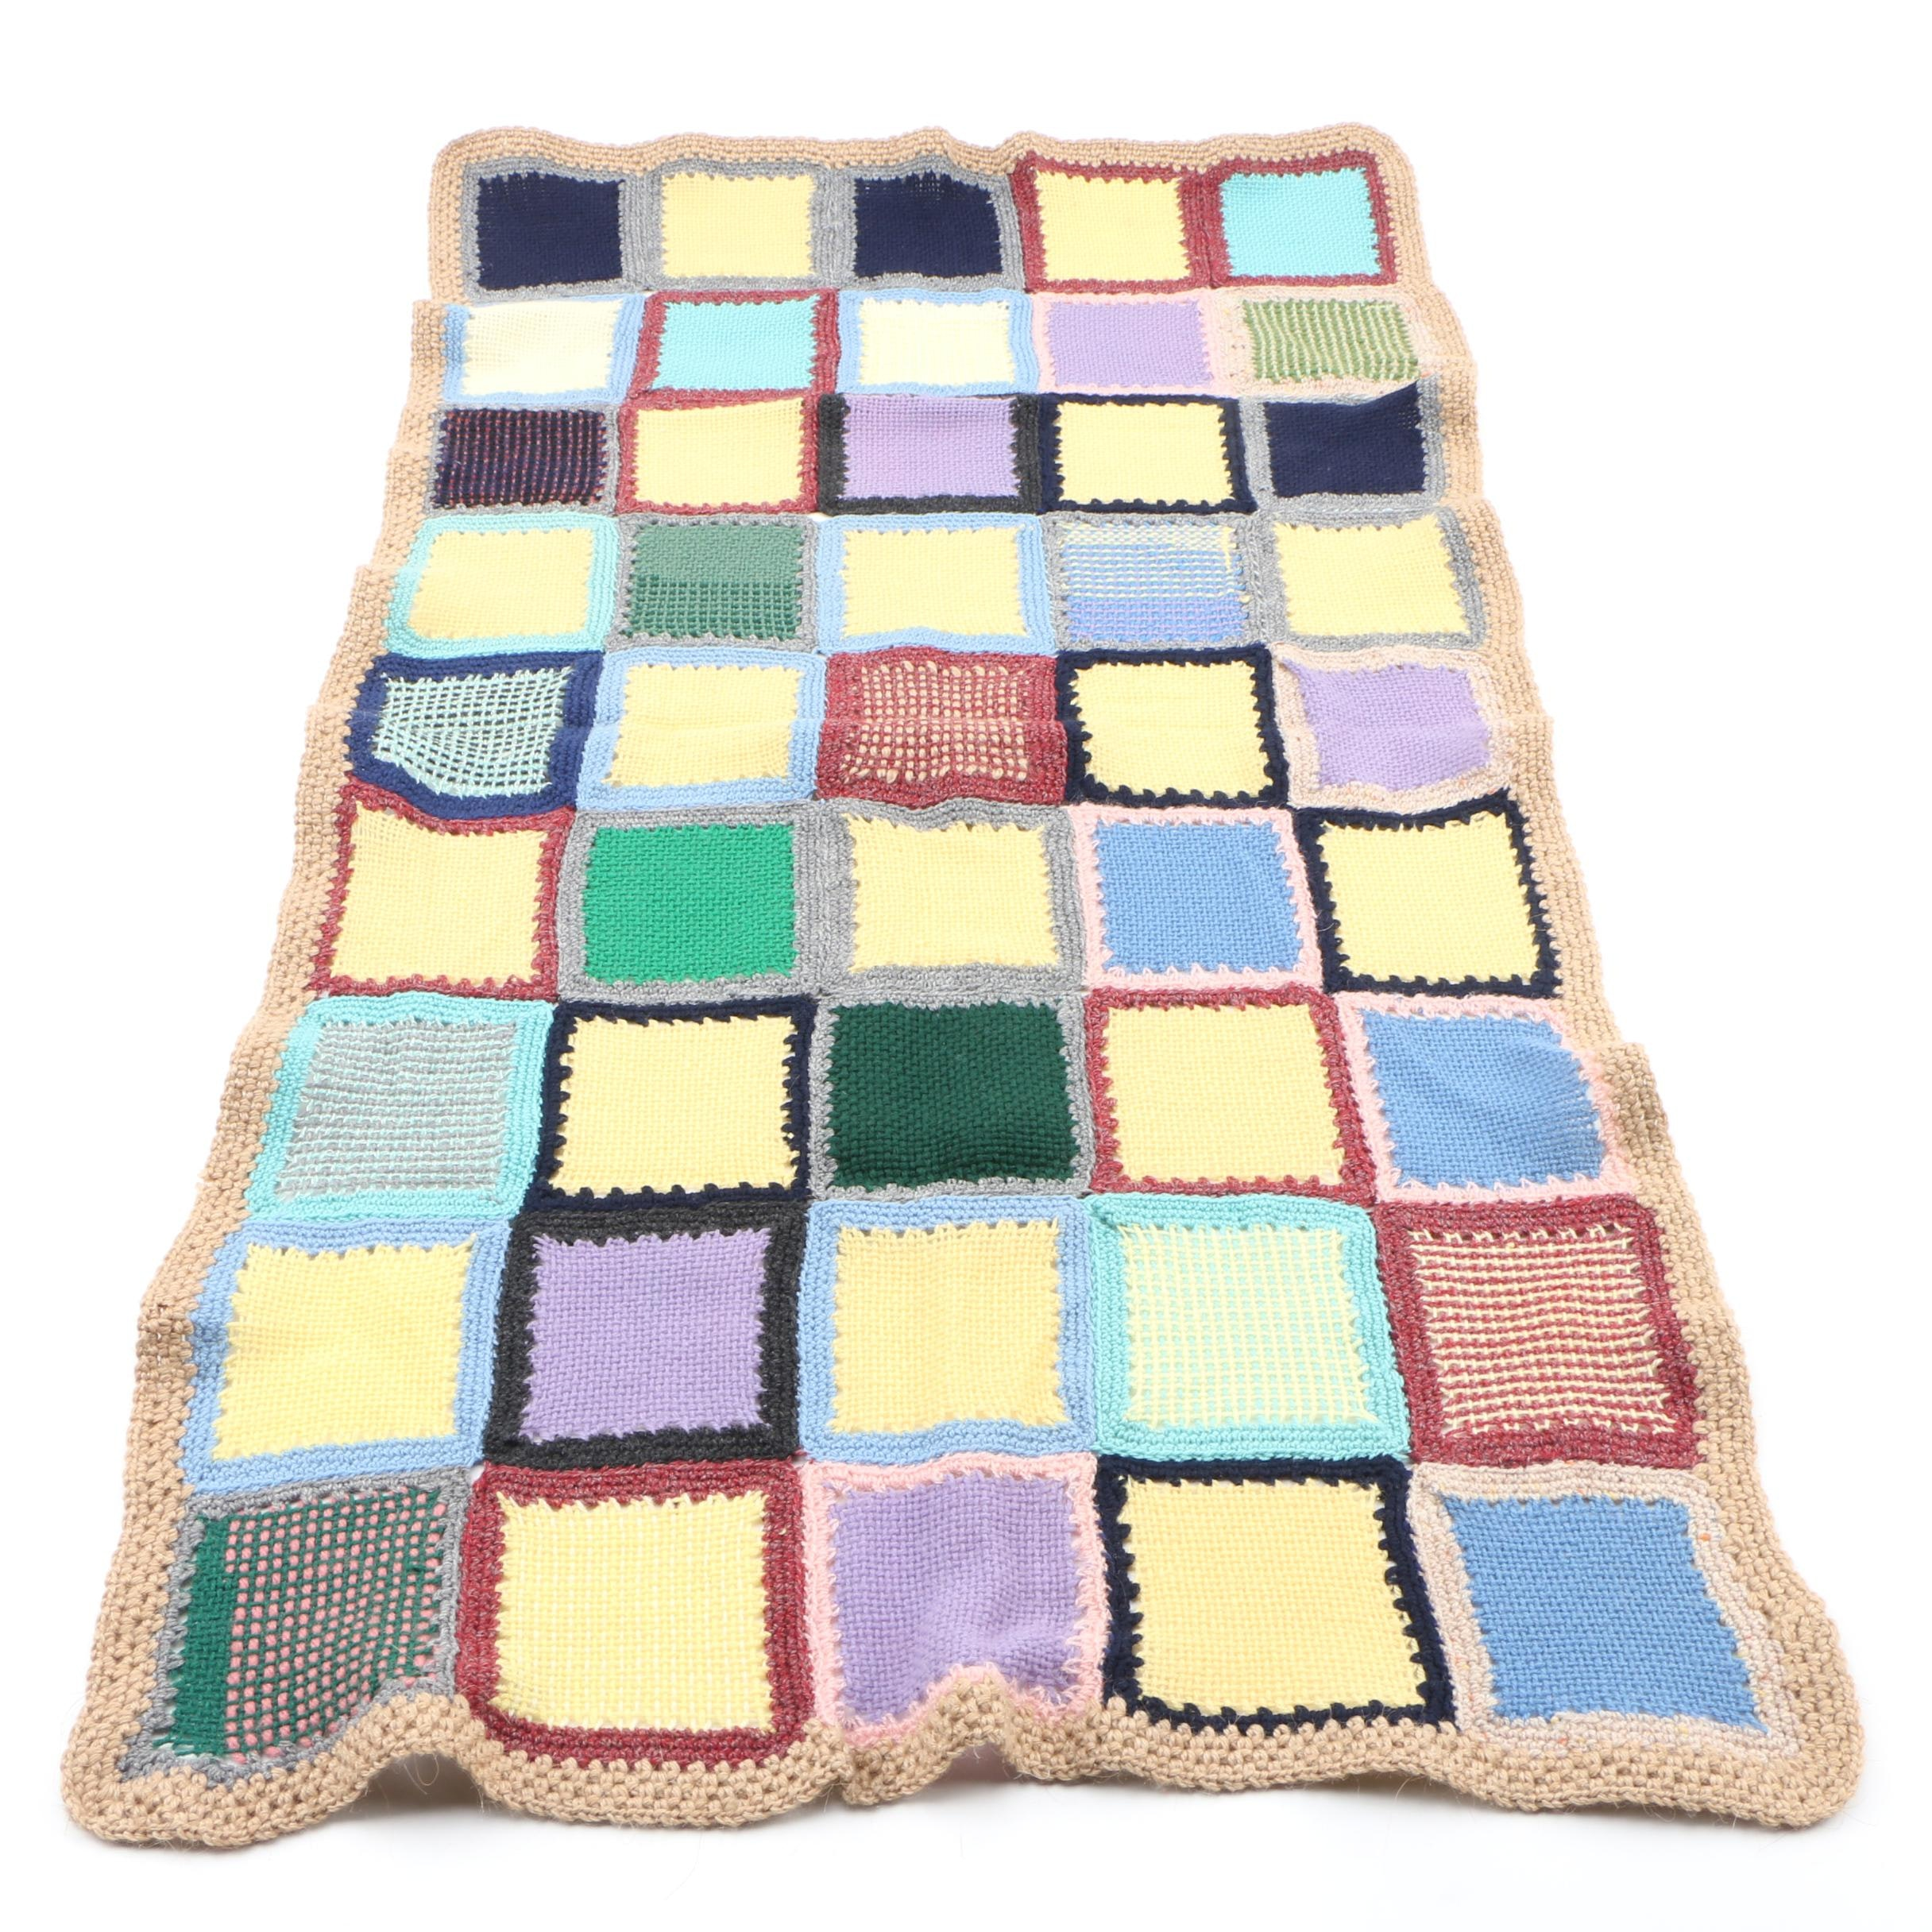 Handmade Colorful Knitted Lap or Baby Blanket, Vintage